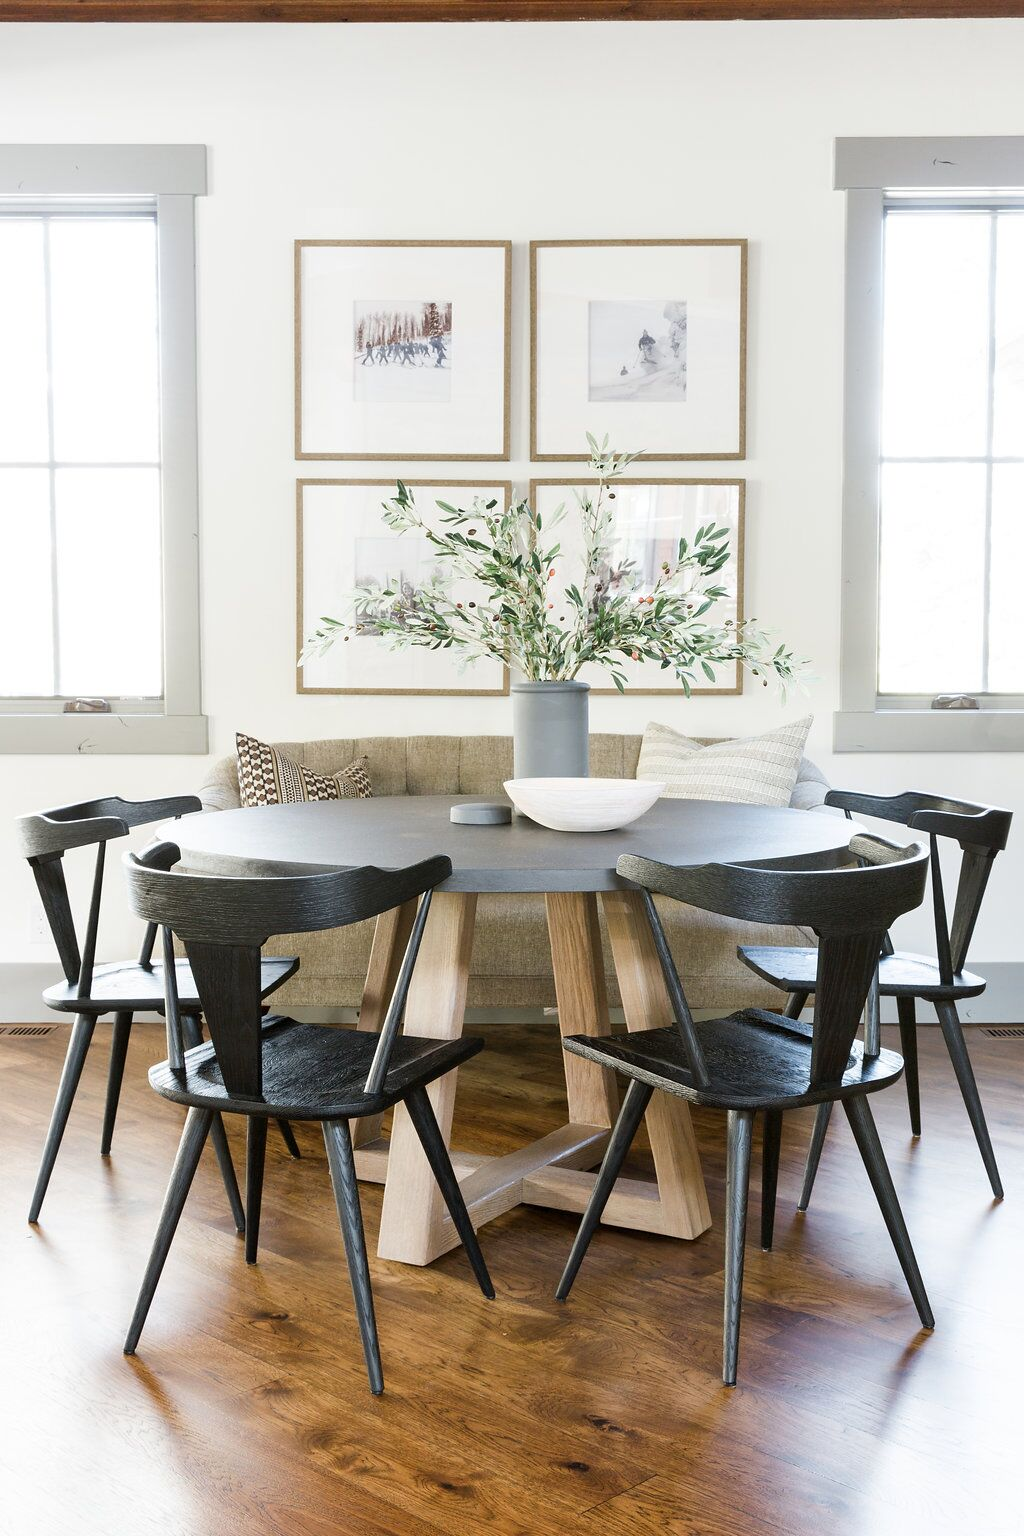 Dining Chair Round Up | Studio McGee Blog